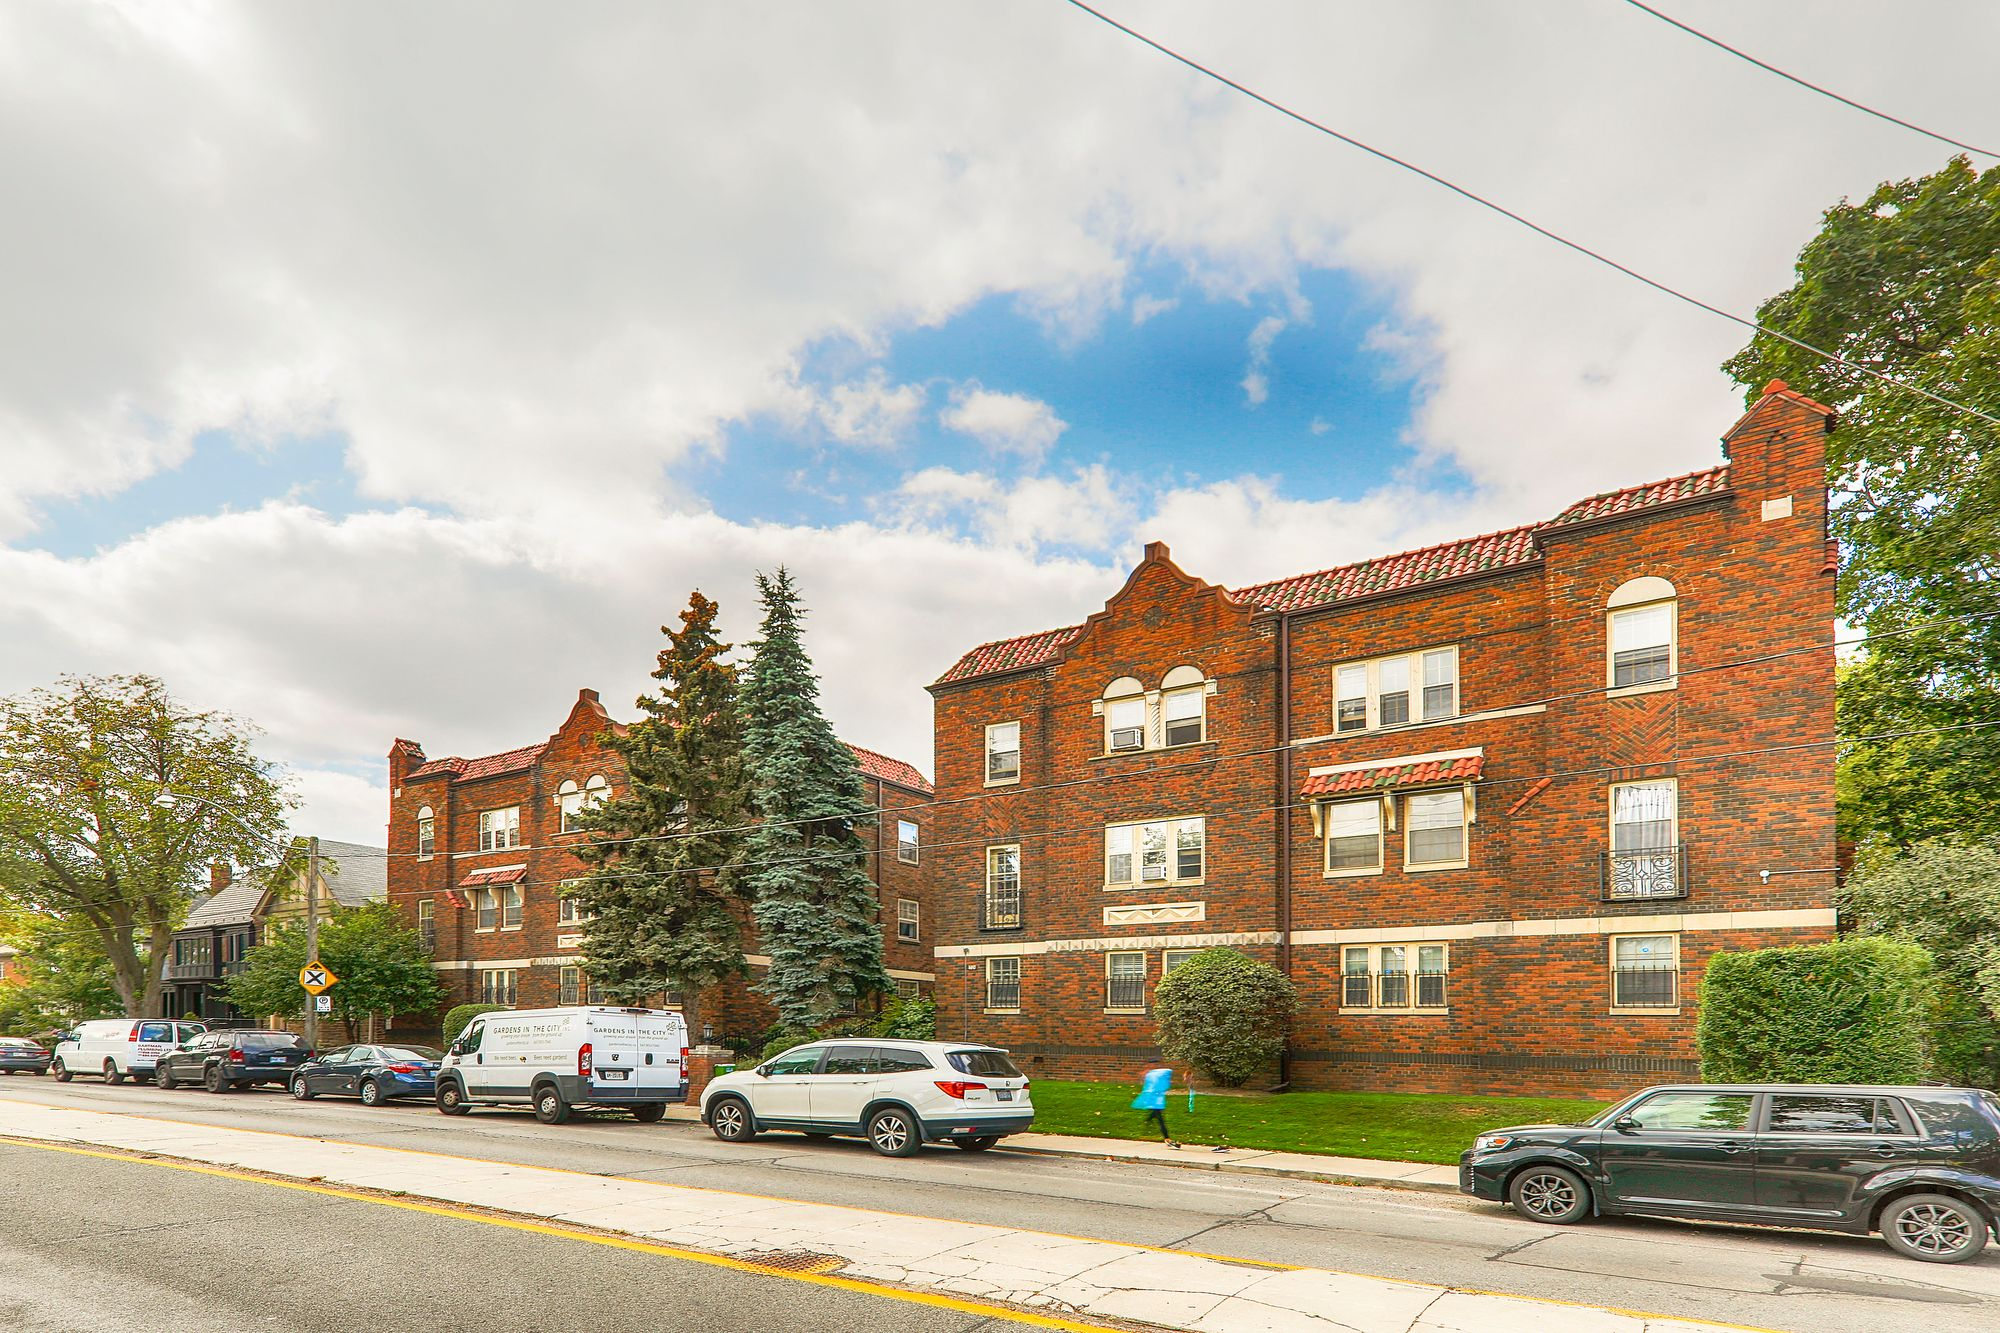 480 Oriole Pk. This condo at 480 Oriole Parkway is located in  Midtown, Toronto - image #1 of 5 by Strata.ca